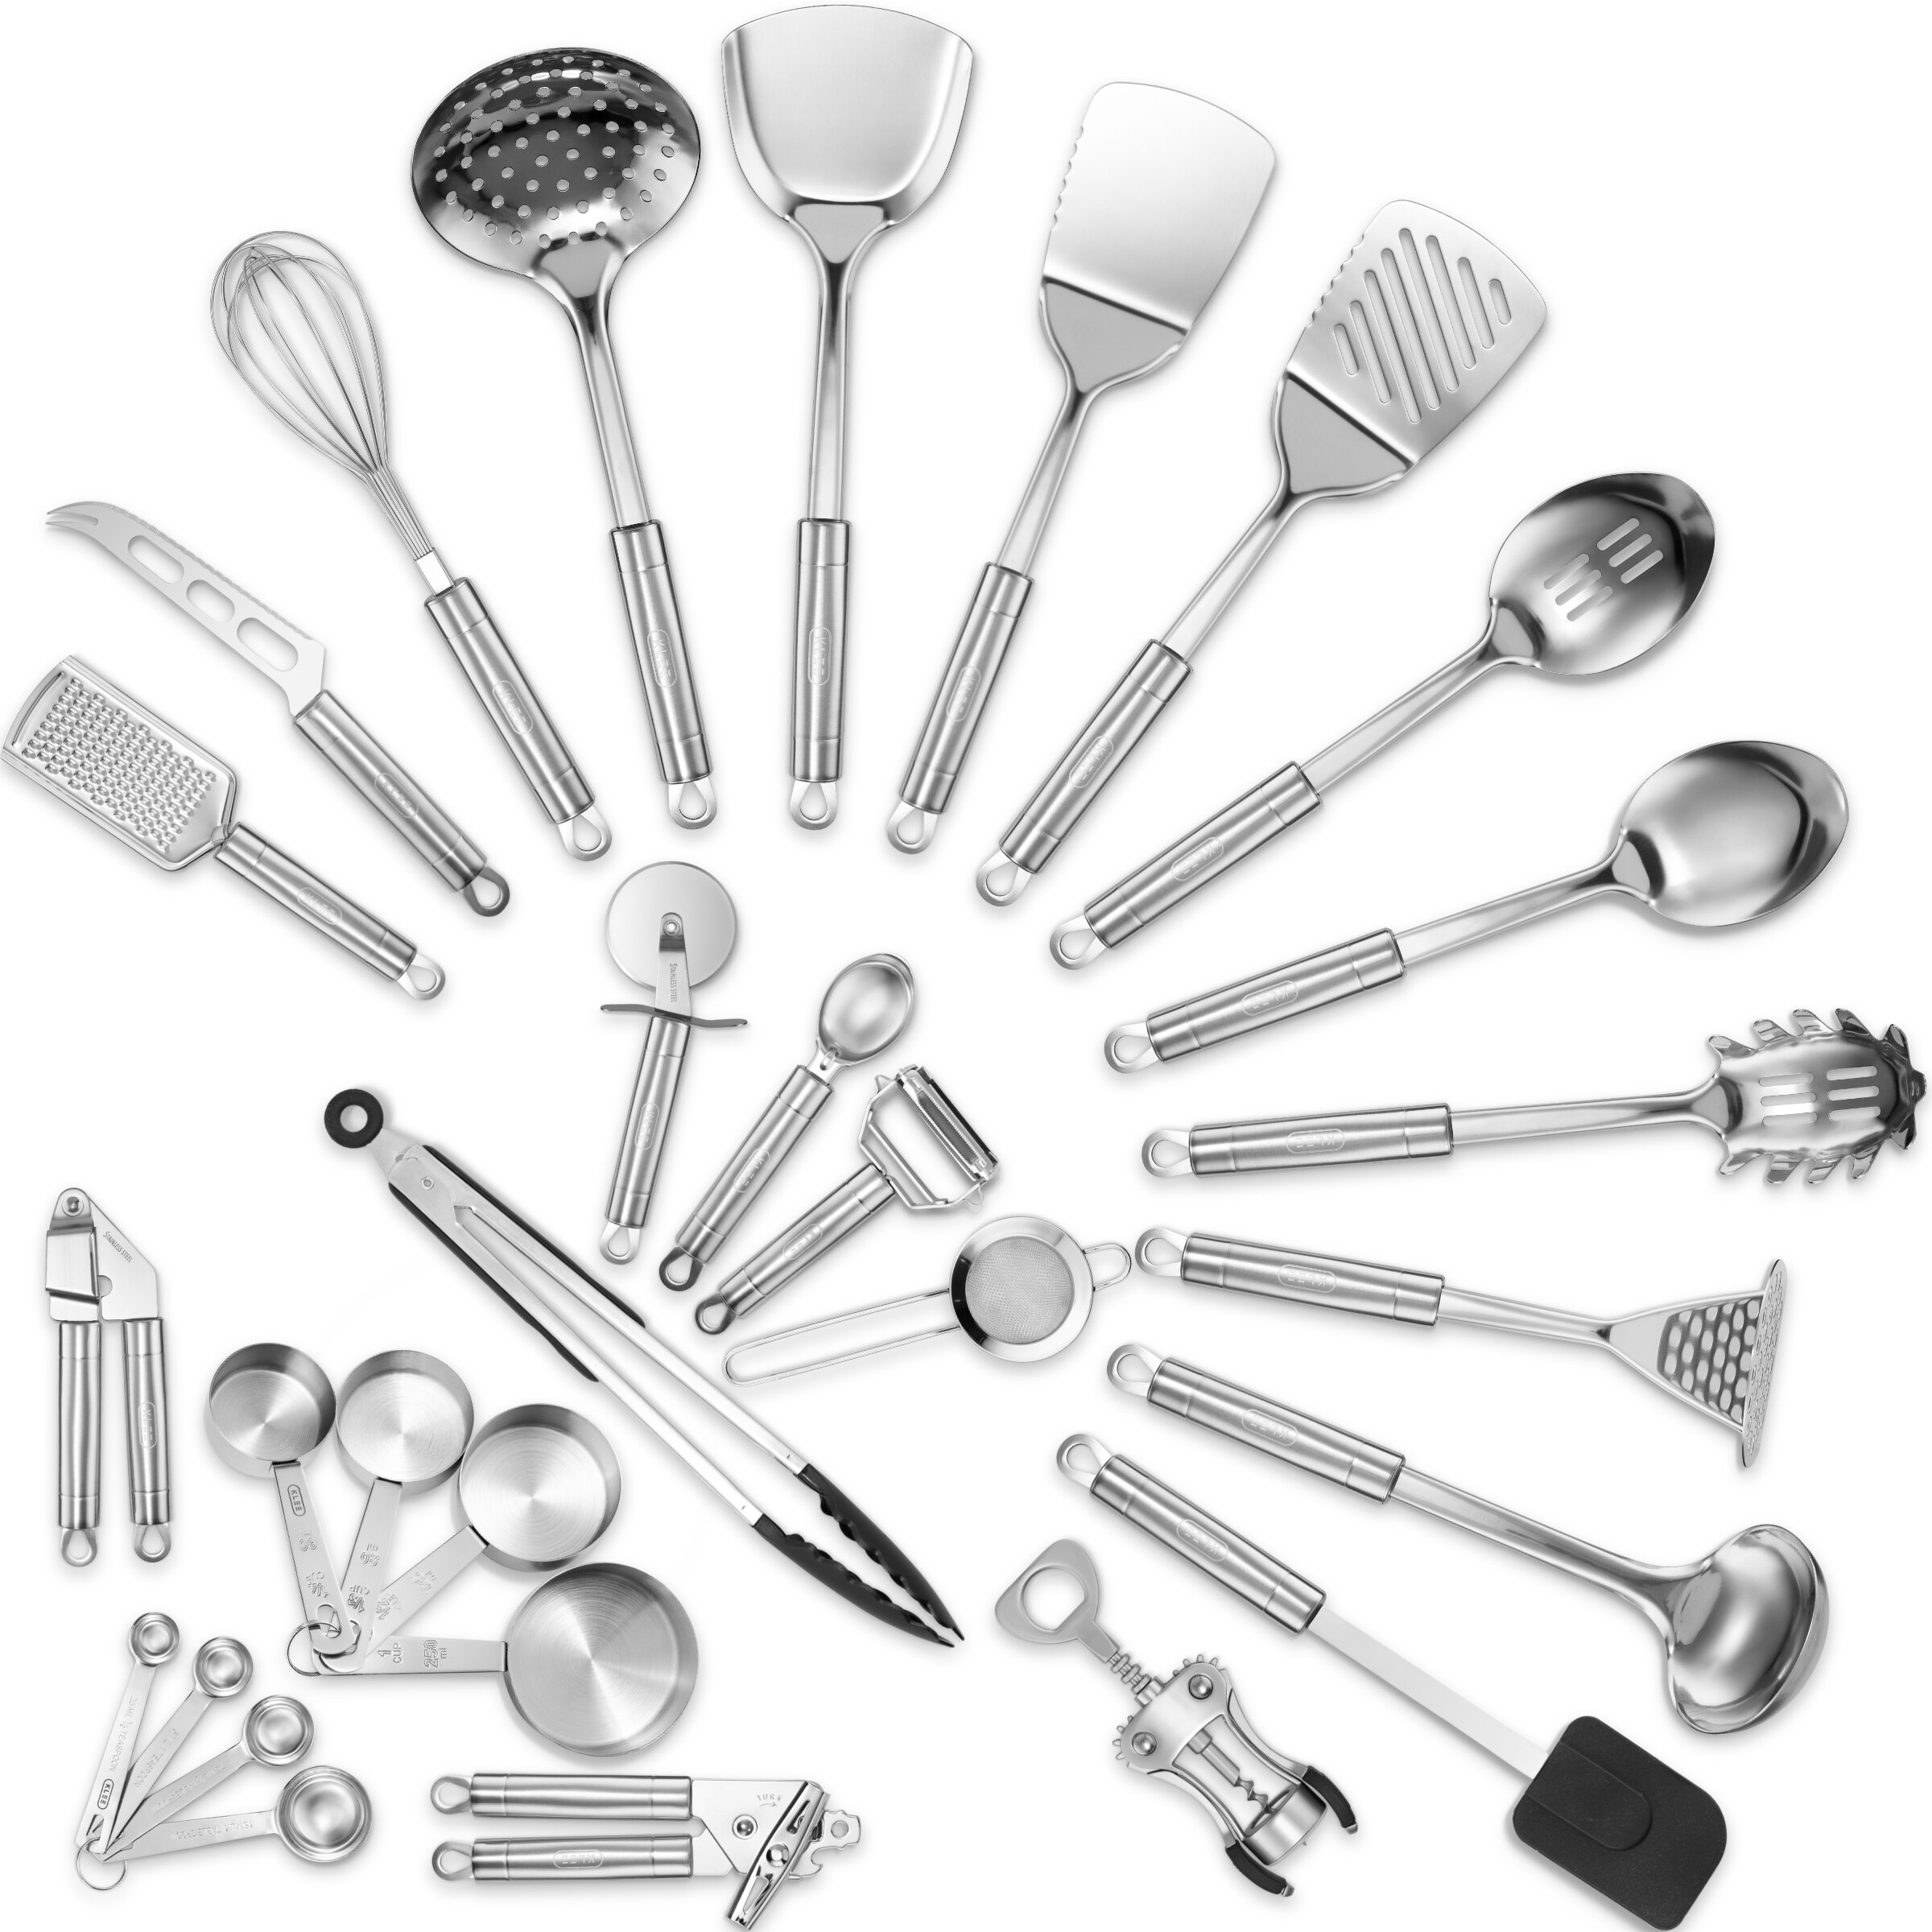 Klee 12-Piece Delux Stainless Steel Assorted Kitchen Utensil Set